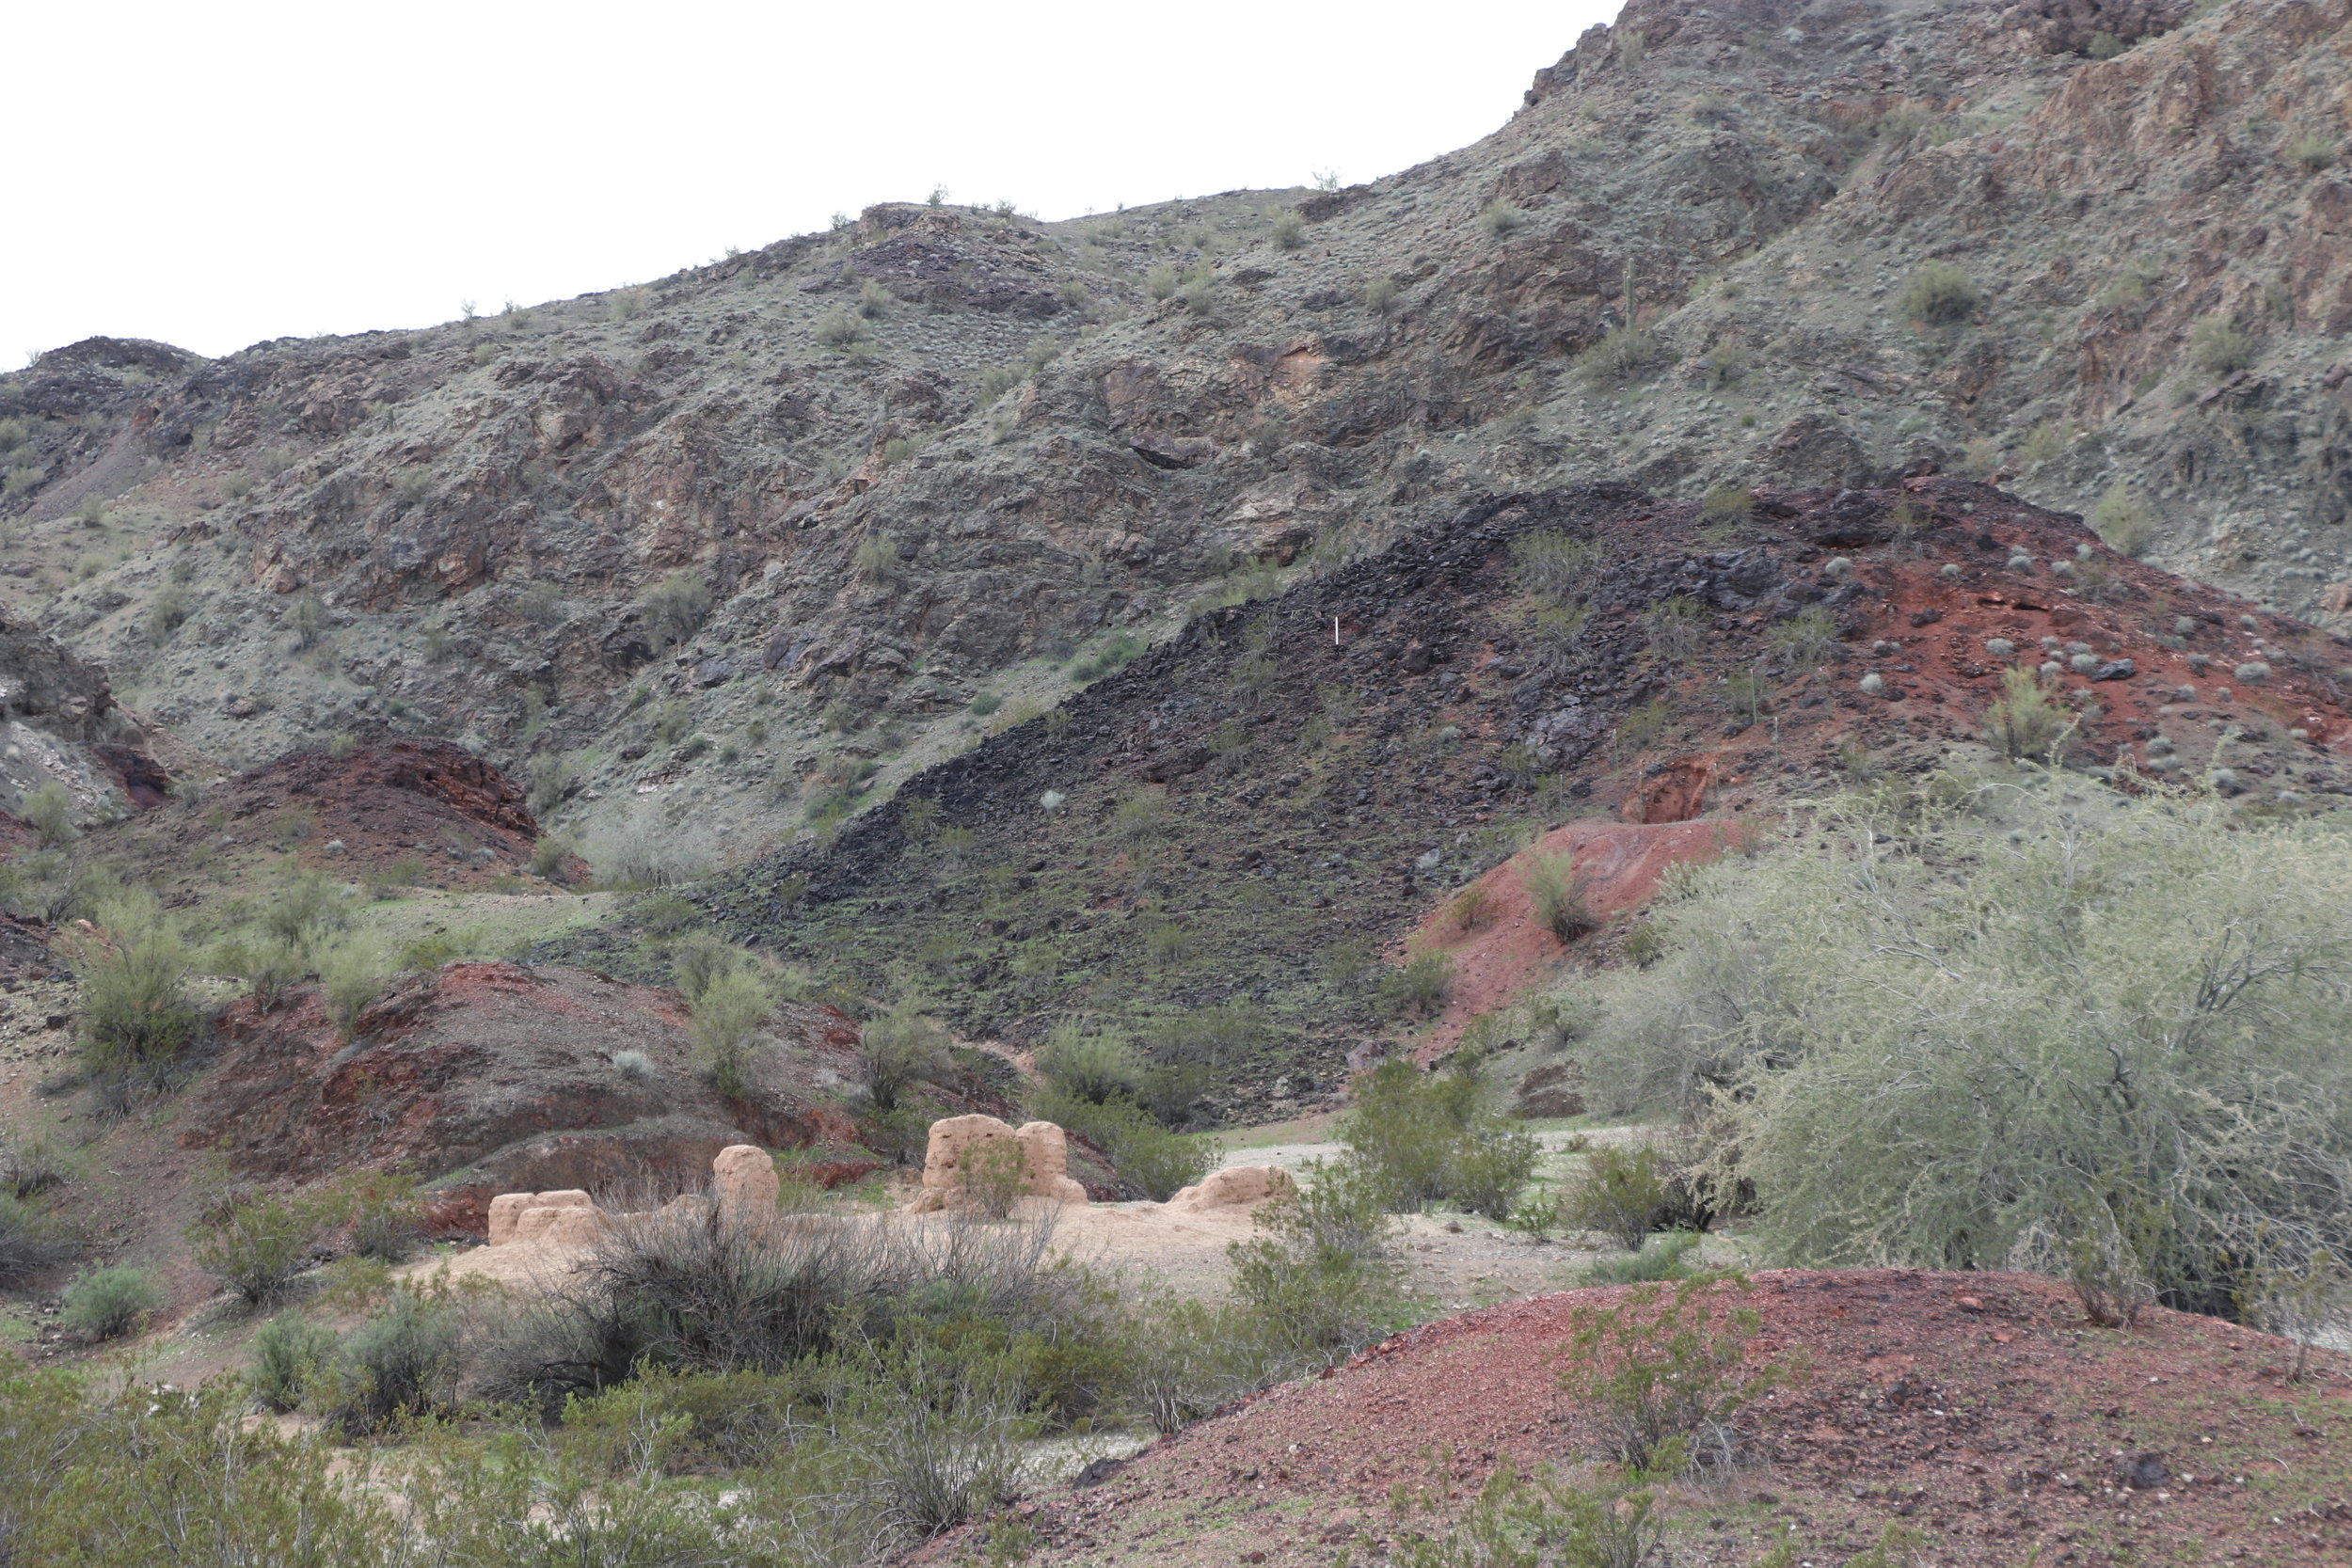 Ruins remained scattered through scenic canyon.